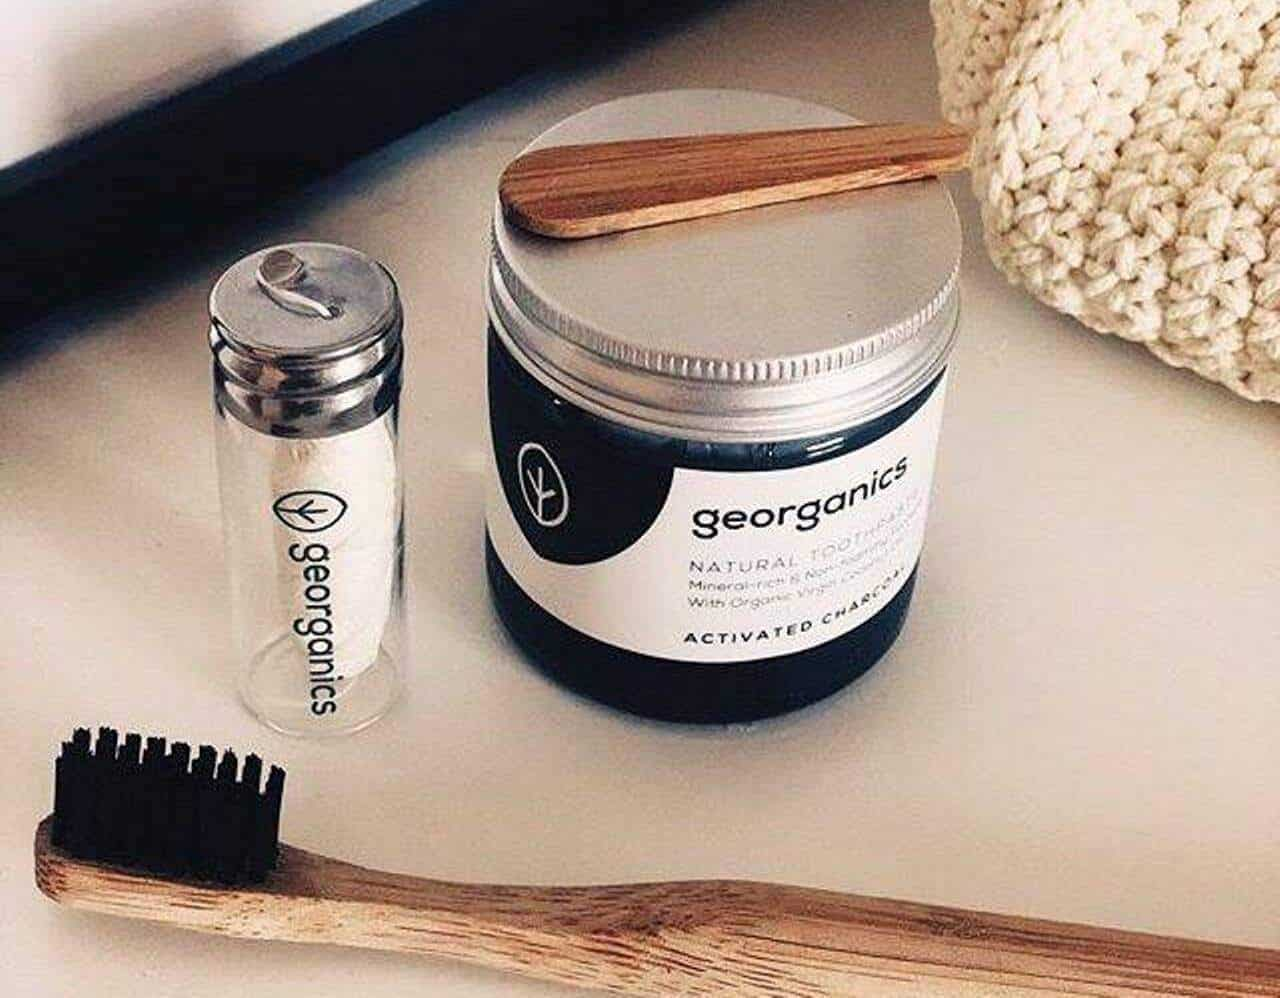 Zero Waste Floss - Sustainable Dental Floss To Help You Fight Plaque and Plastic Image by Georganics #zerowastefloss #zerowasteteeth